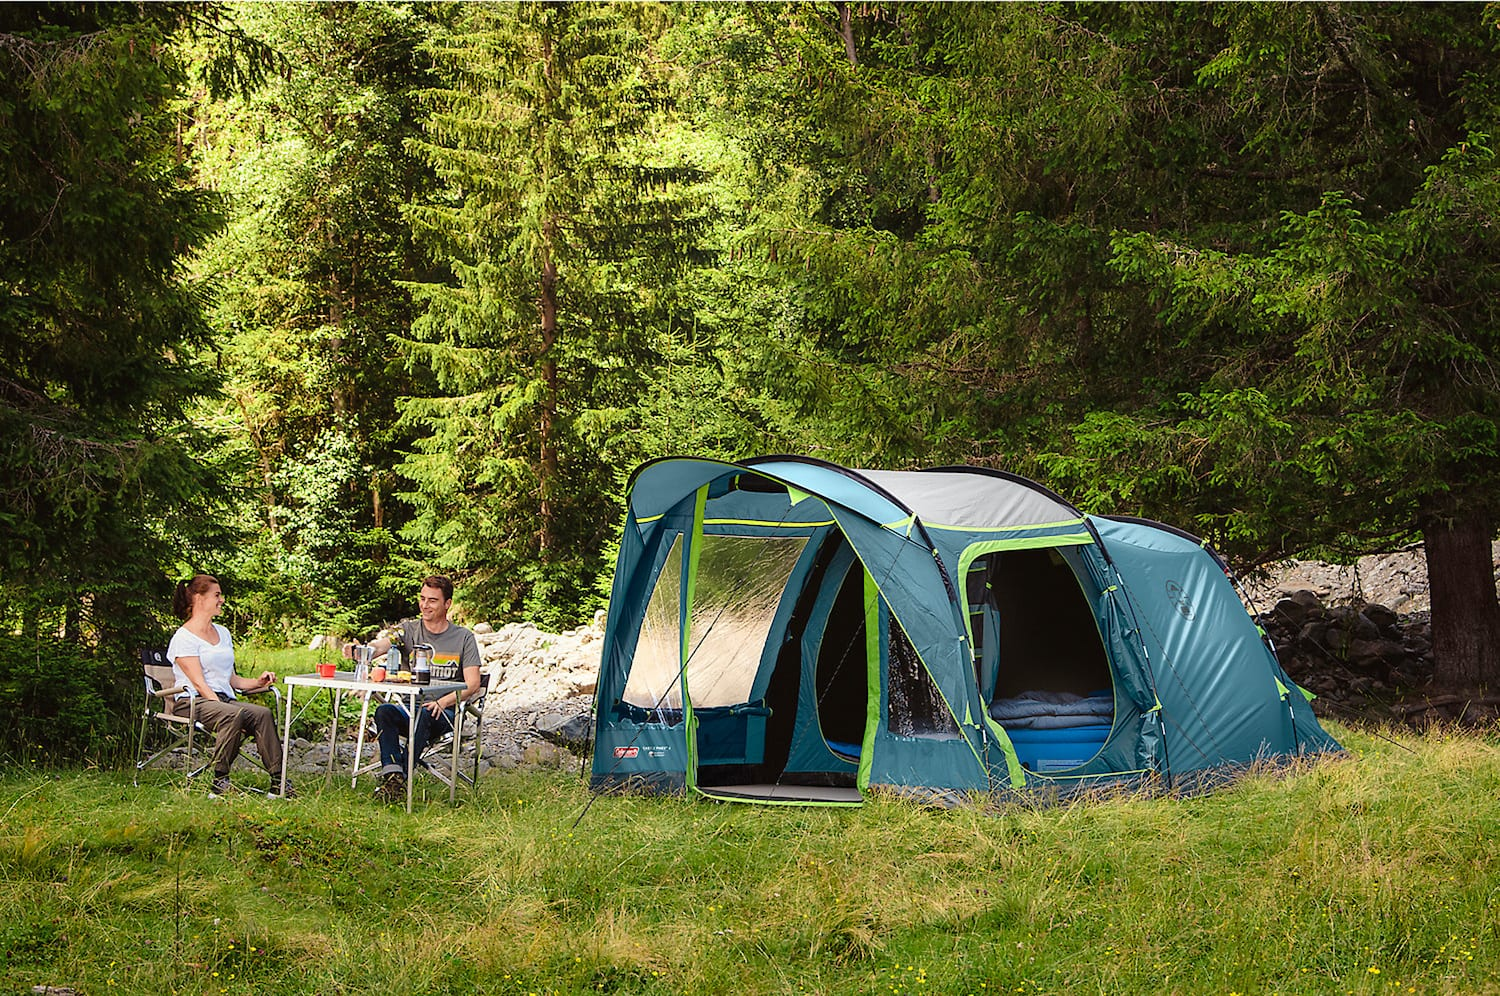 Coleman 4 persoons tent